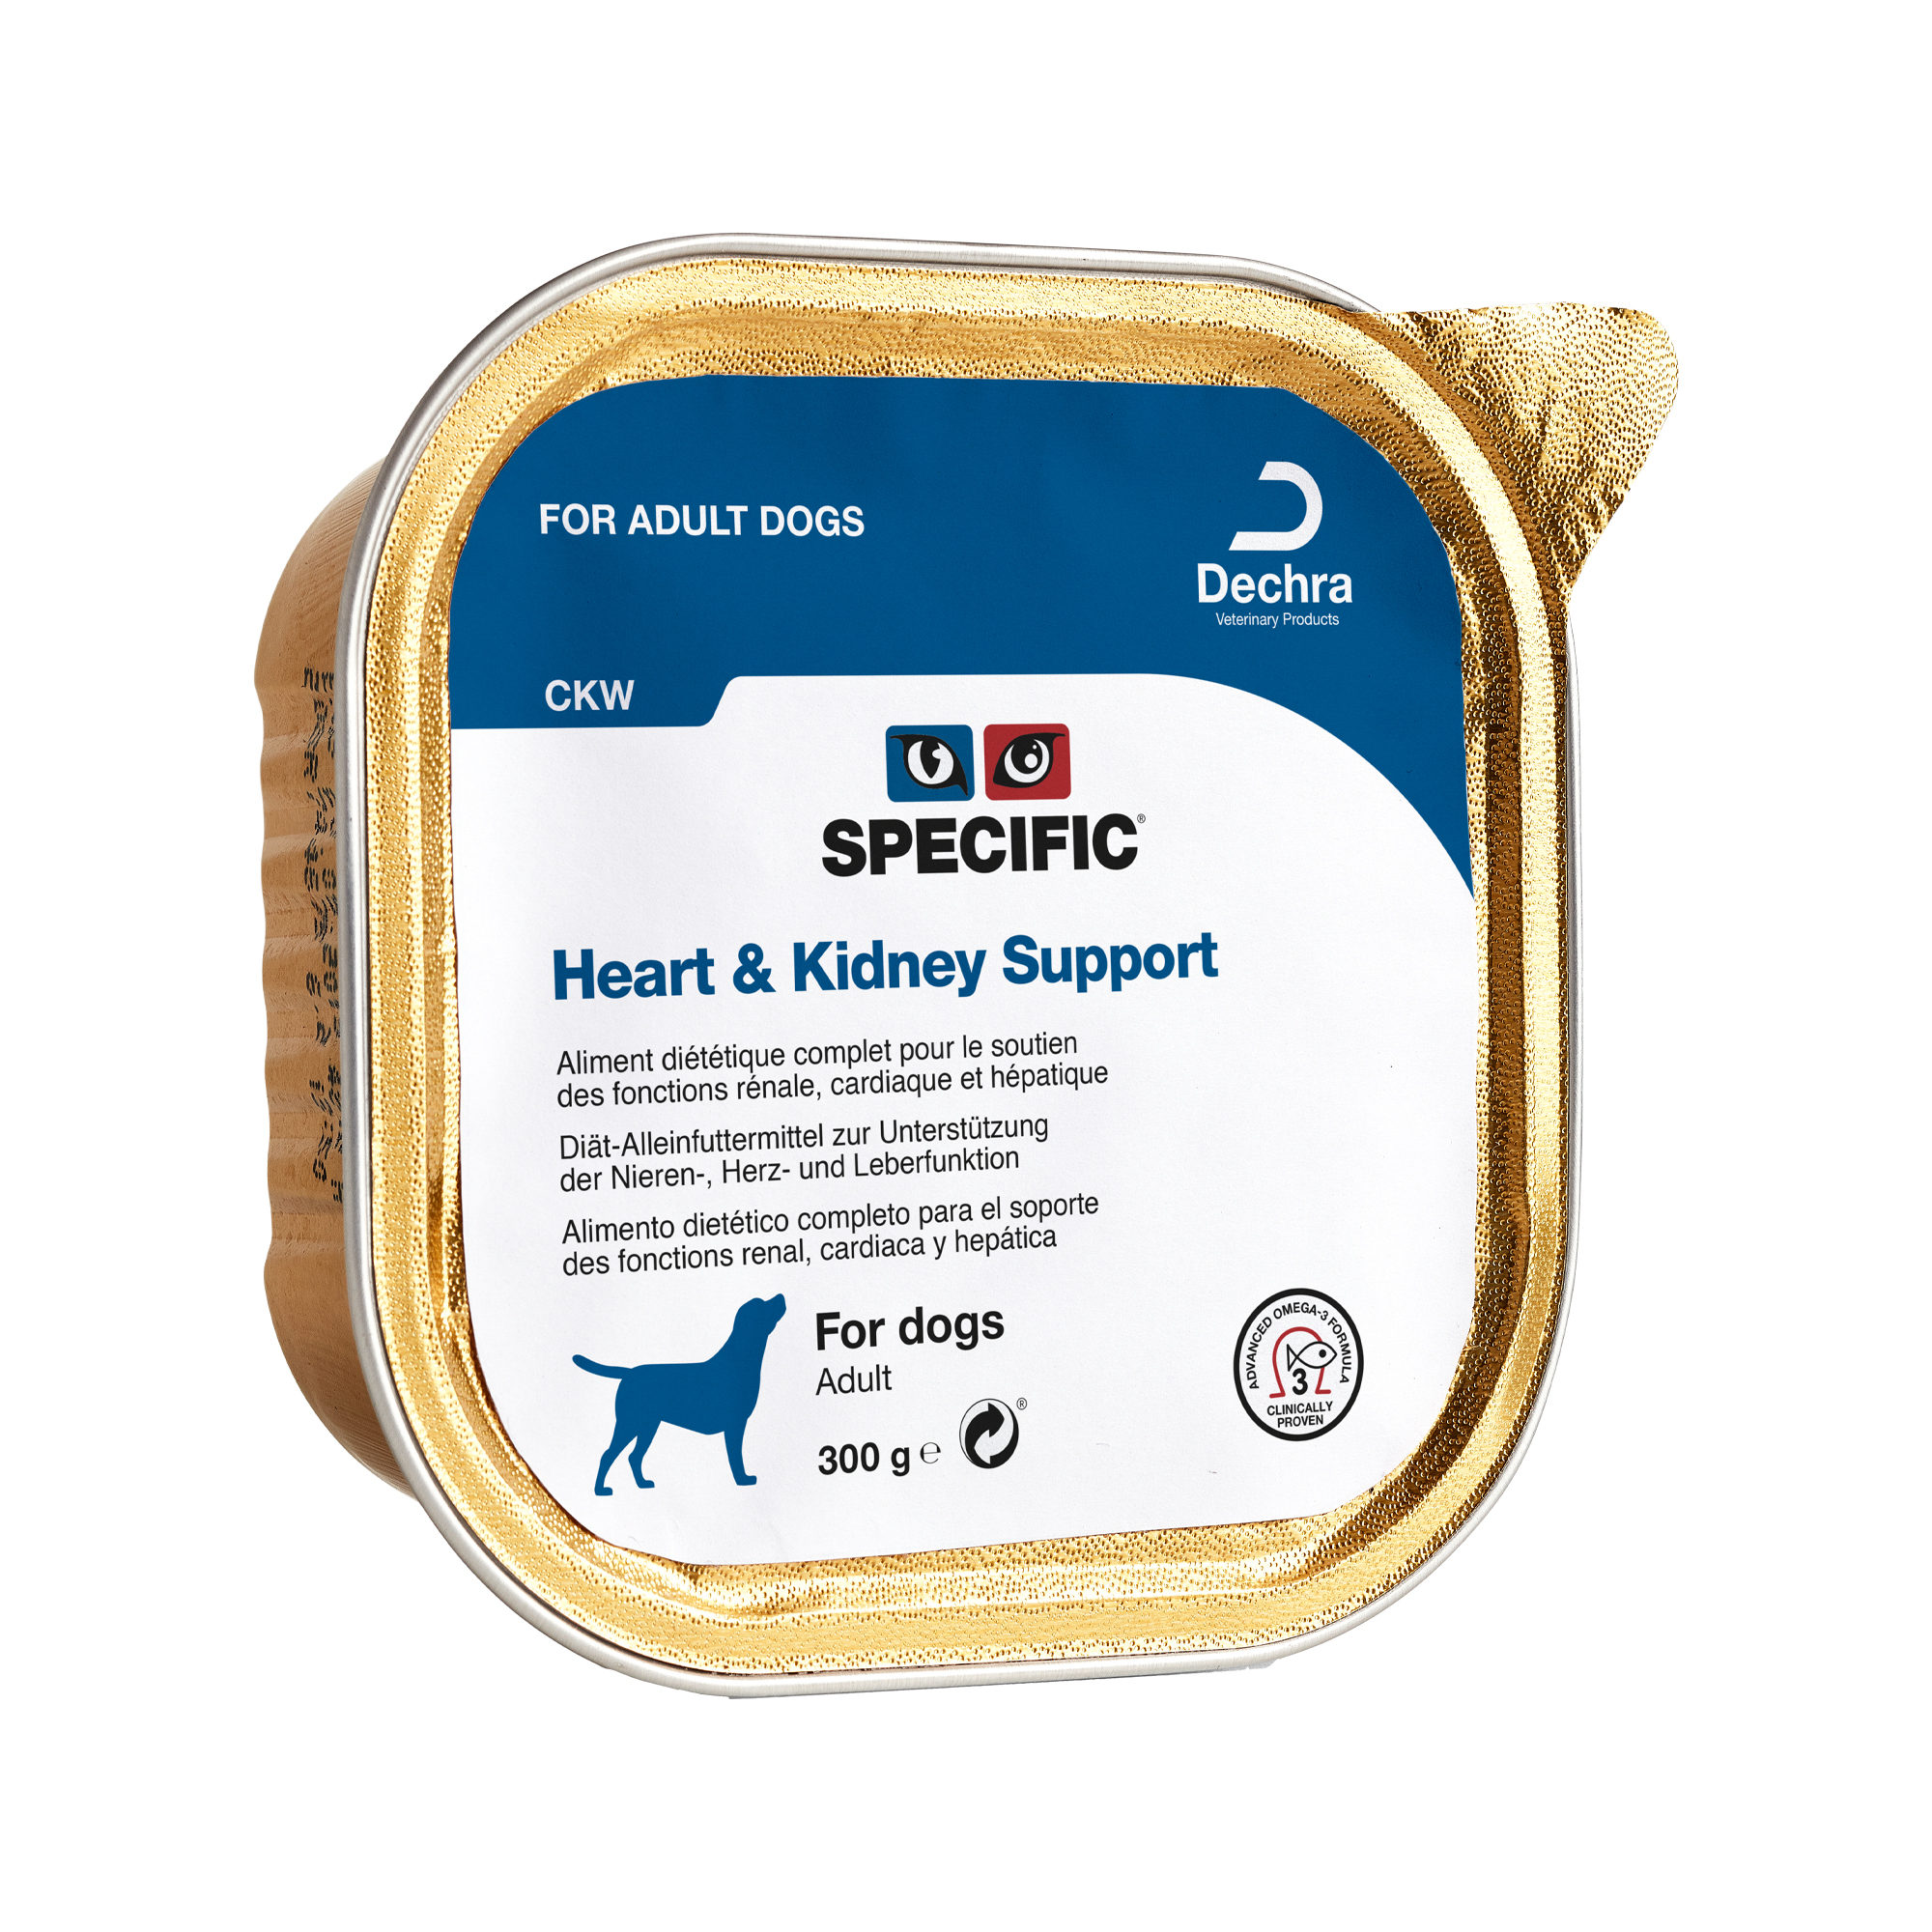 SPECIFIC Heart & Kidney Support CKW - Barquette